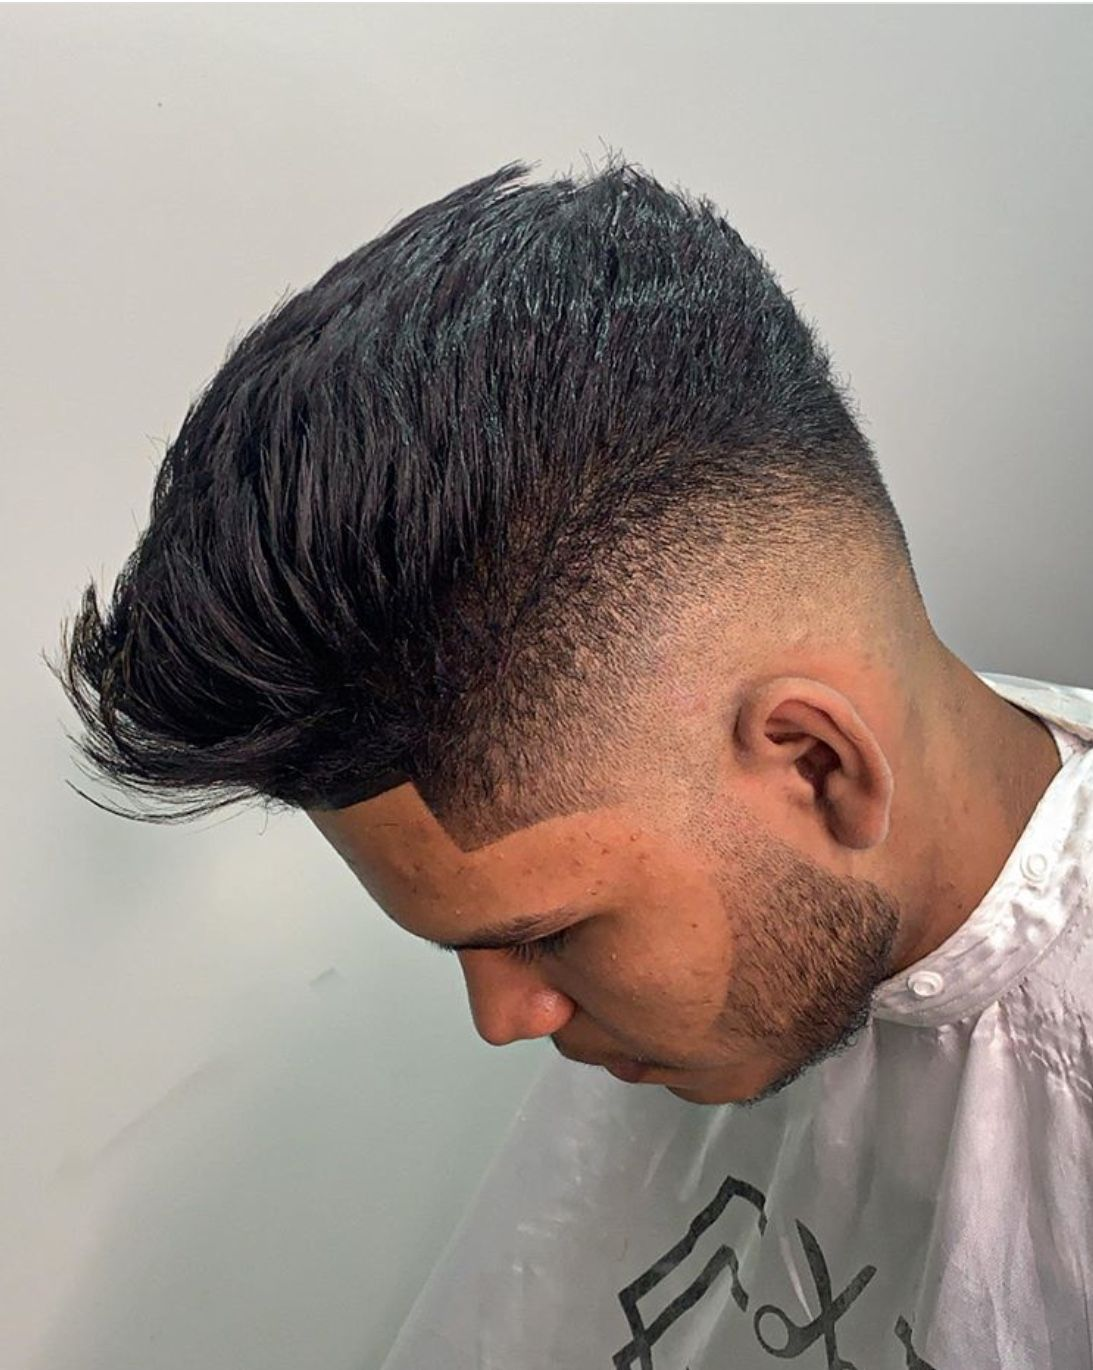 18 Fade Haircut Styles For Men The Glossychic In 2020 Fade Haircut Styles Fade Haircut Best Fade Haircuts